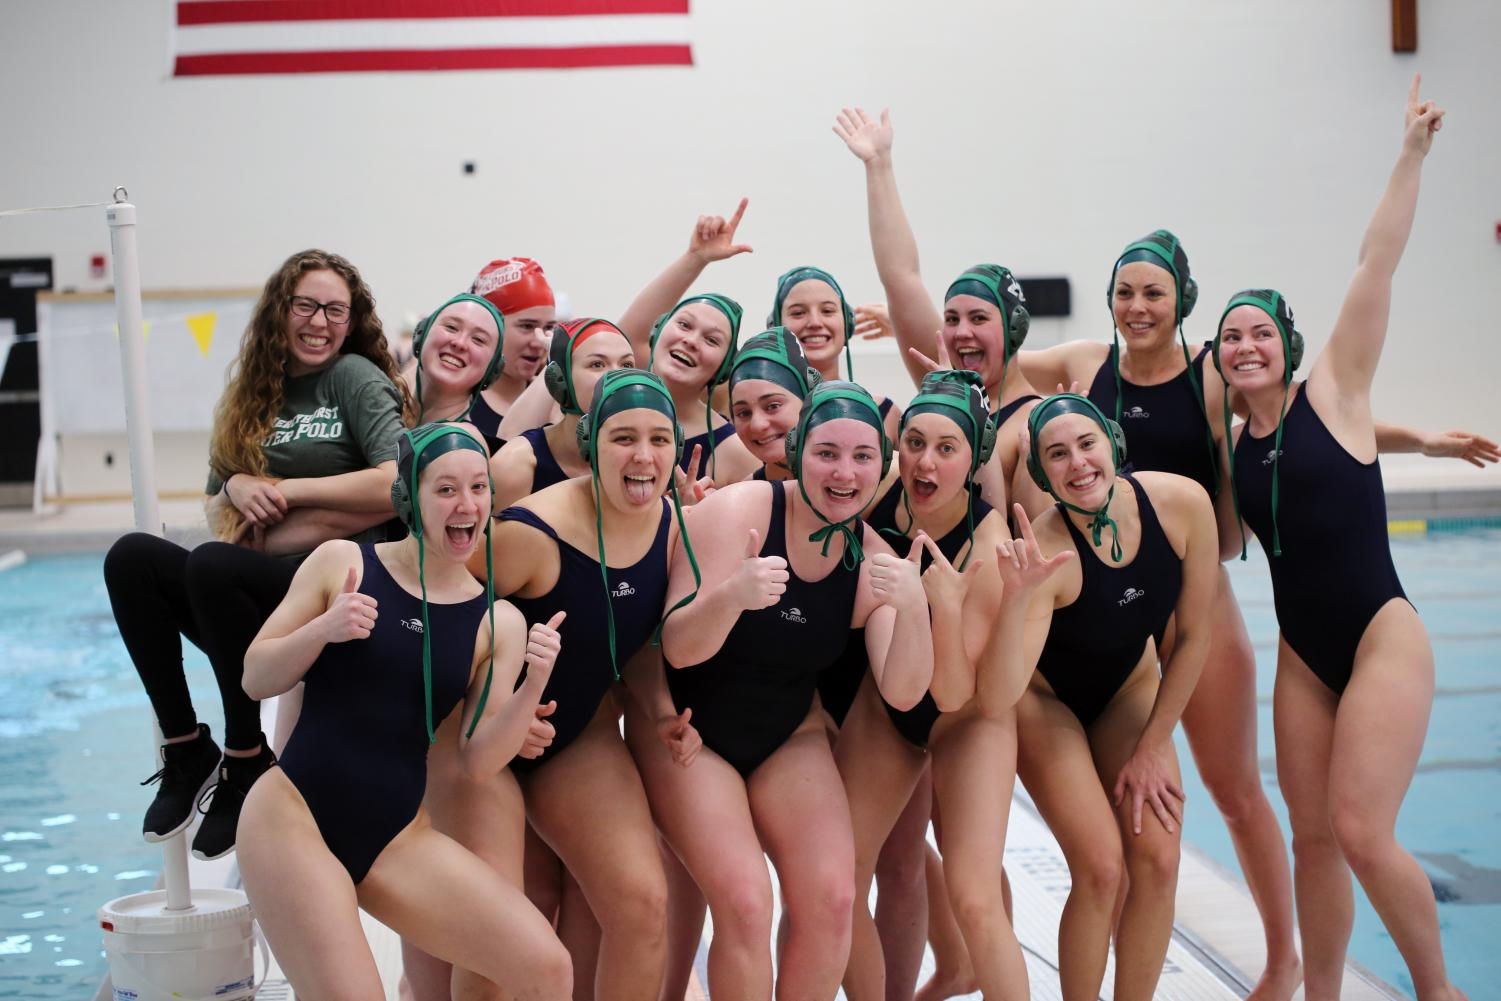 The women's water polo team poses for a photo after their finish at the WWPA Championships.